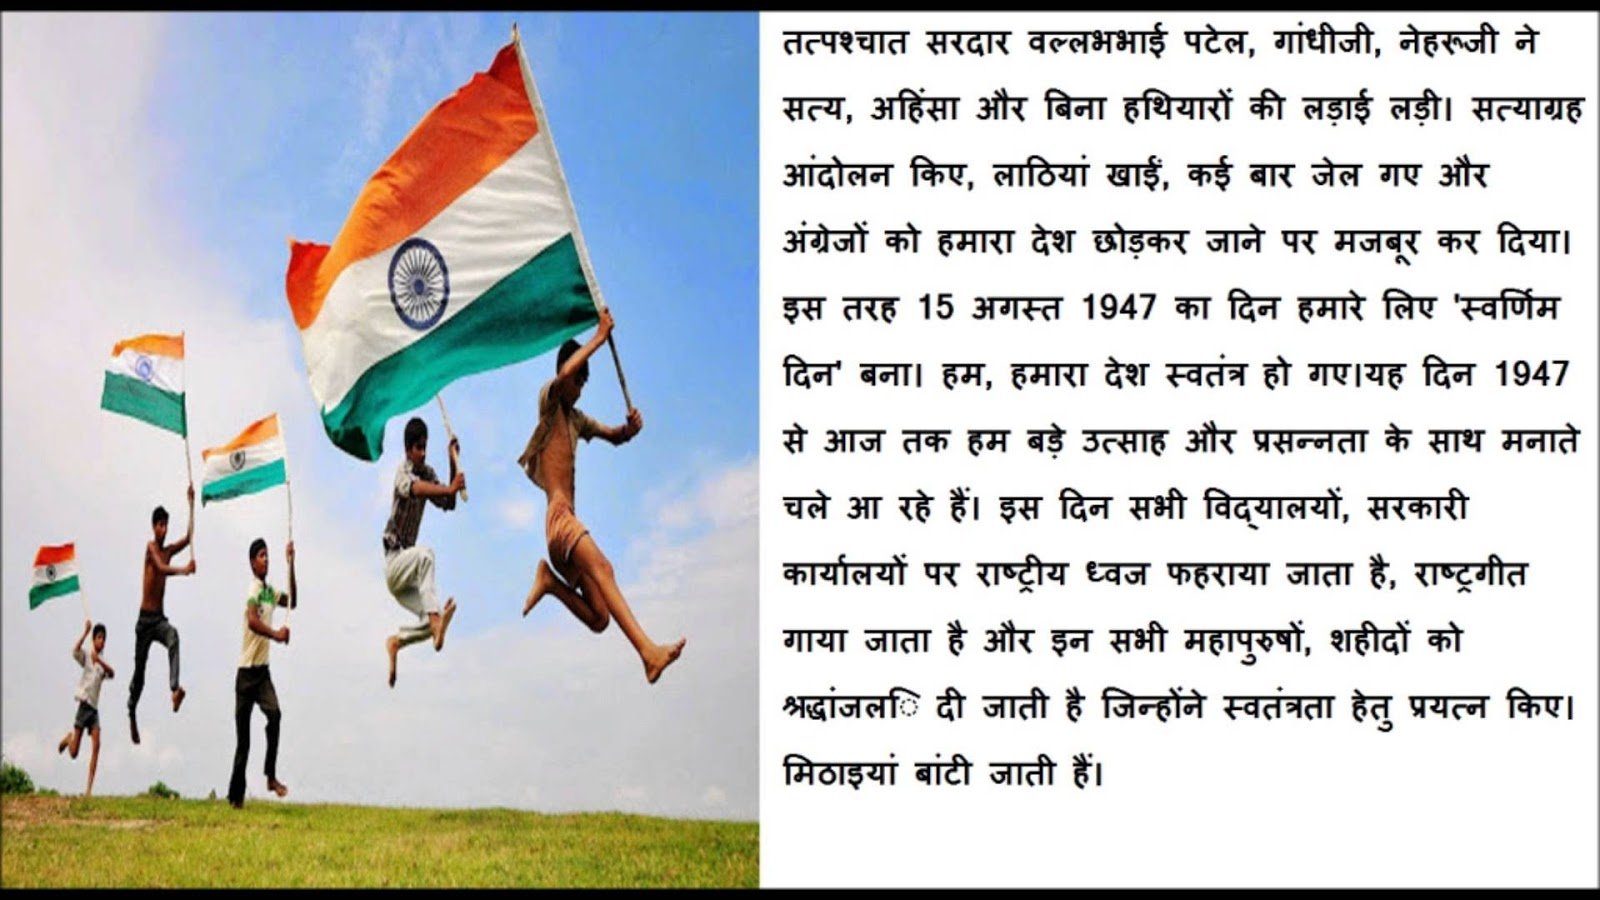 independence day speech in hindi Various other kinds of activities like speech competition, cultural patriotic dance, parade and flag hosting in the school premises do not forget to check our collection of independence day speech in hindi (bhashan) or 15 aug speech in english.